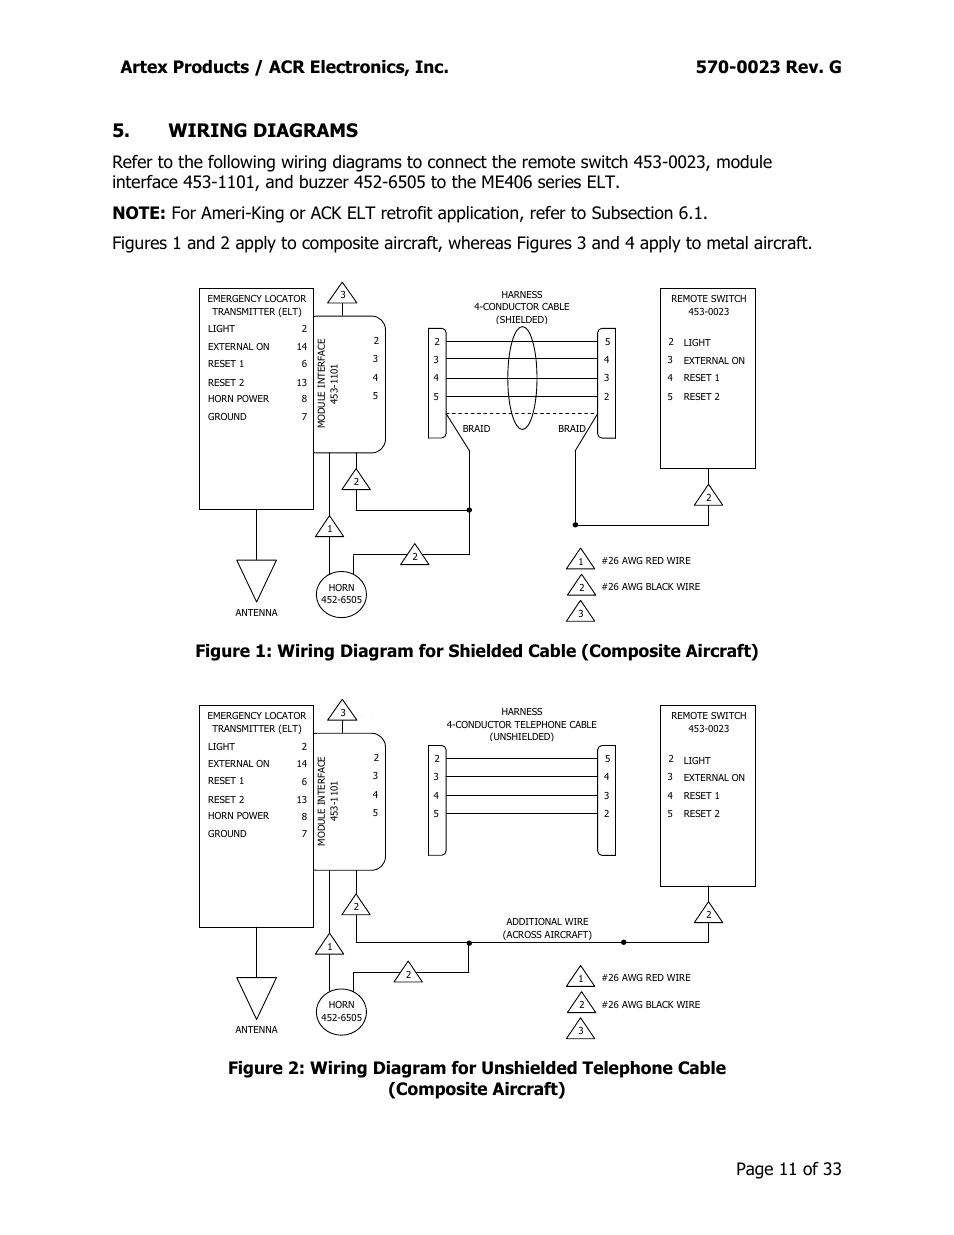 medium resolution of wiring diagrams artex products acr electronics inc 0023 rev g acr artex me406 ace 455 0023 user manual page 11 33